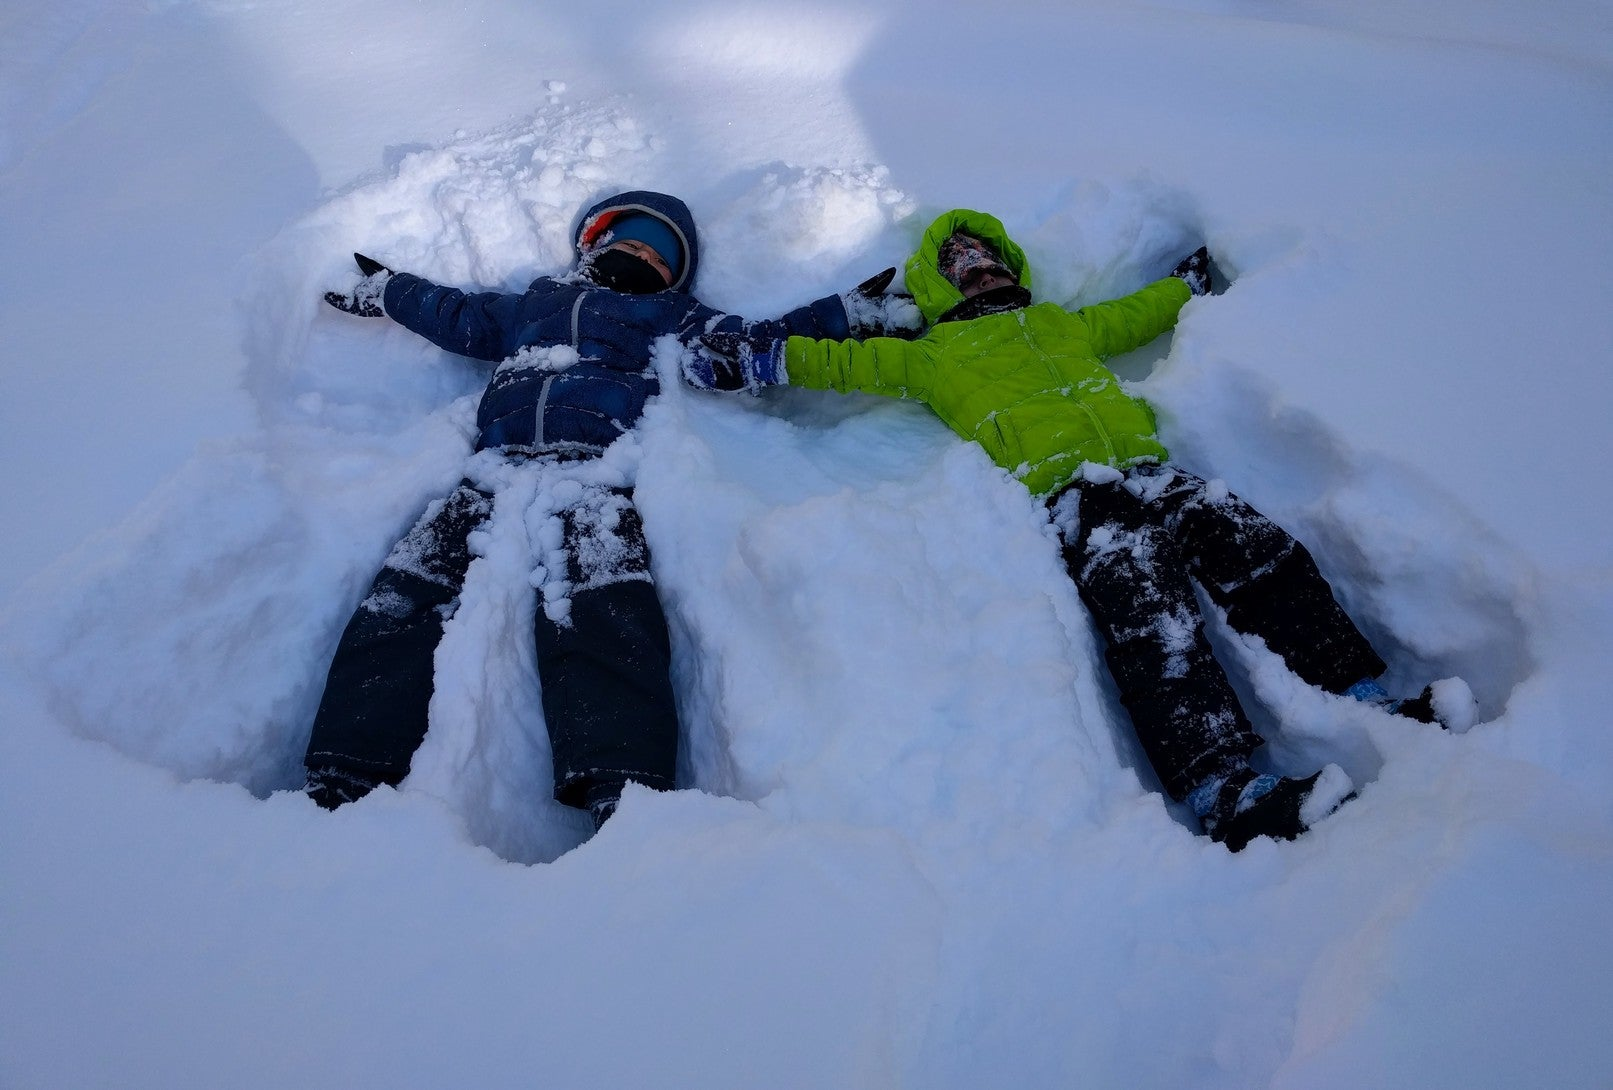 two children in winter gear making snow angels